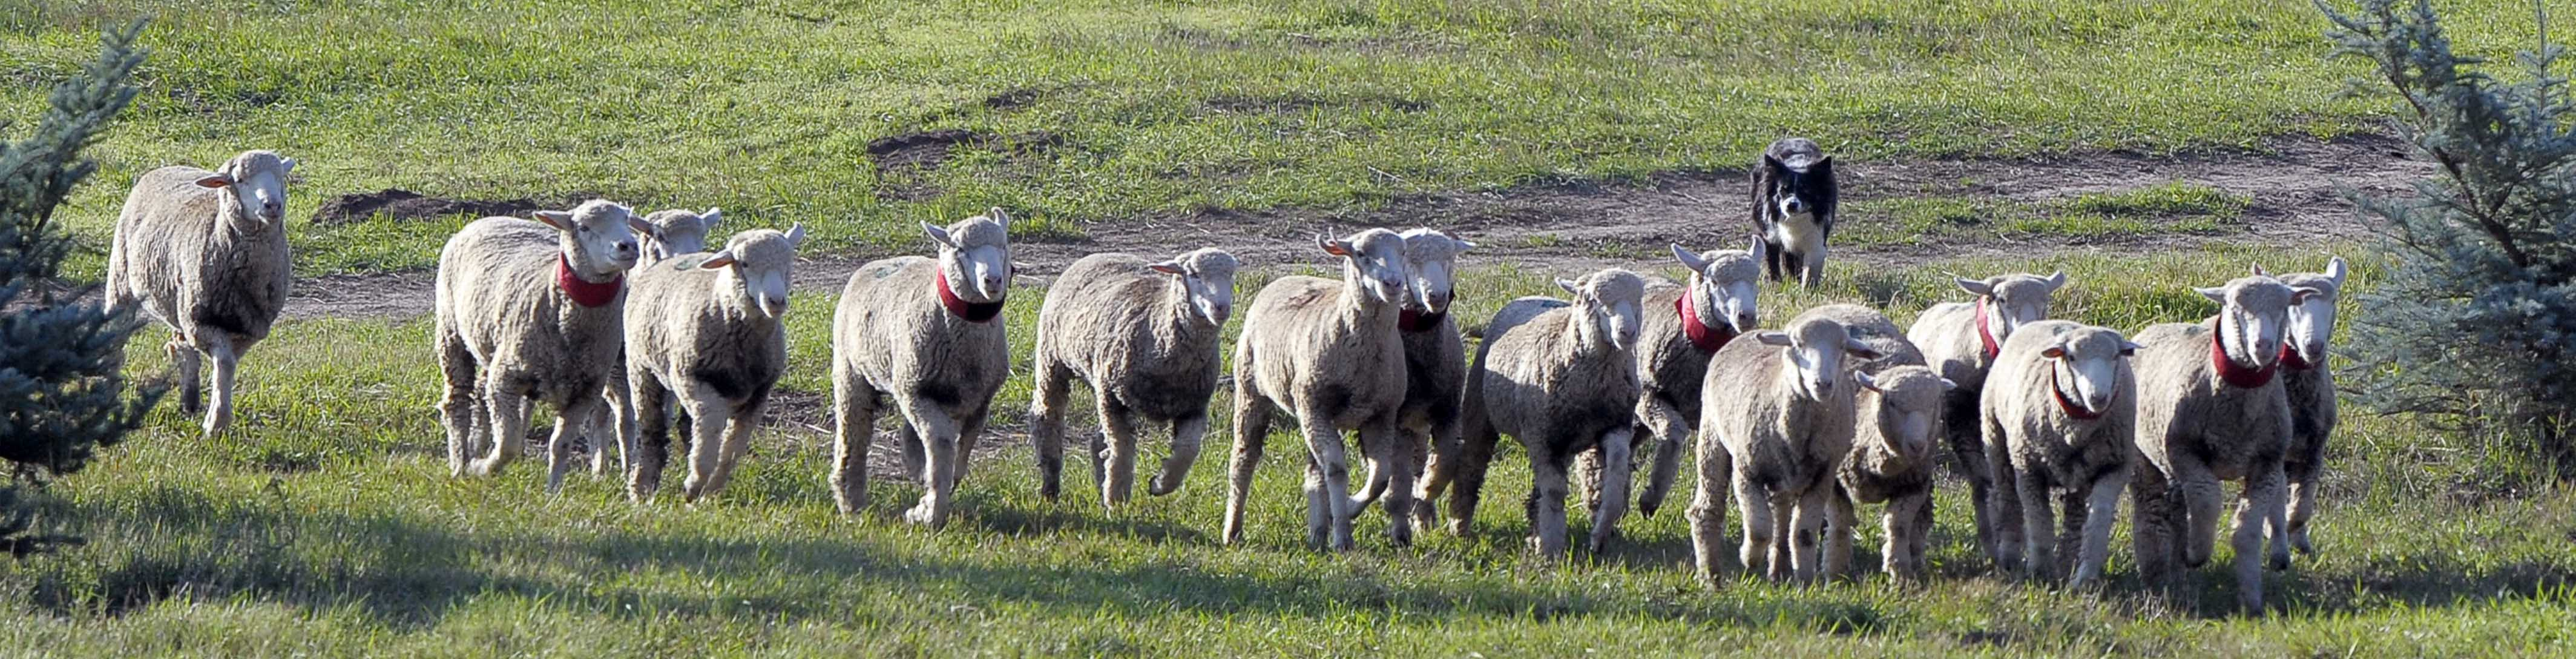 sheepdog header template_more sheep